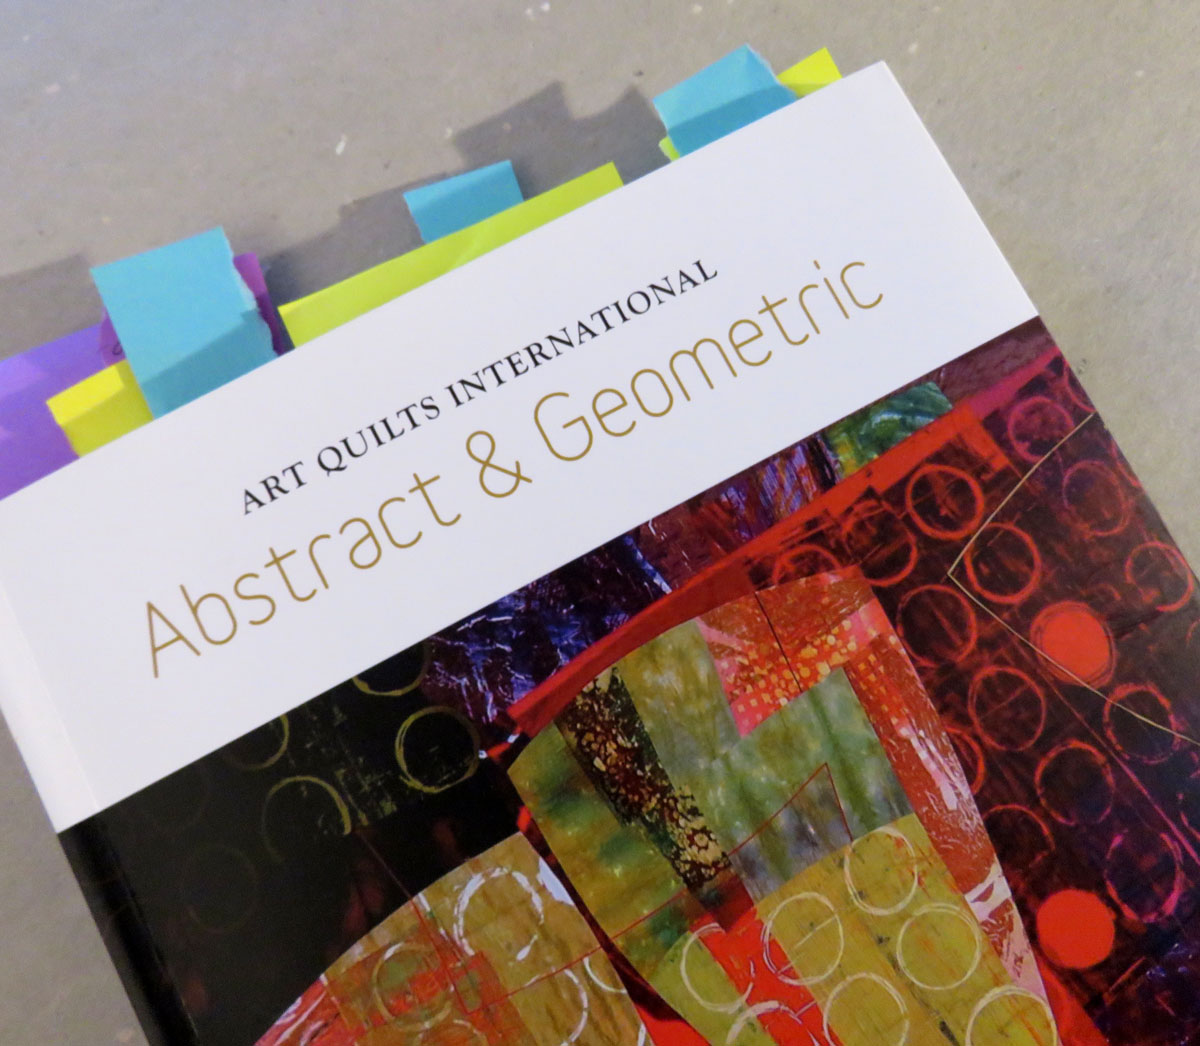 This worthy book of art quilts written and curated by Martha Sielman is a must have. That cover image is from Pat Pauly, a master of dyed and printed fabric.